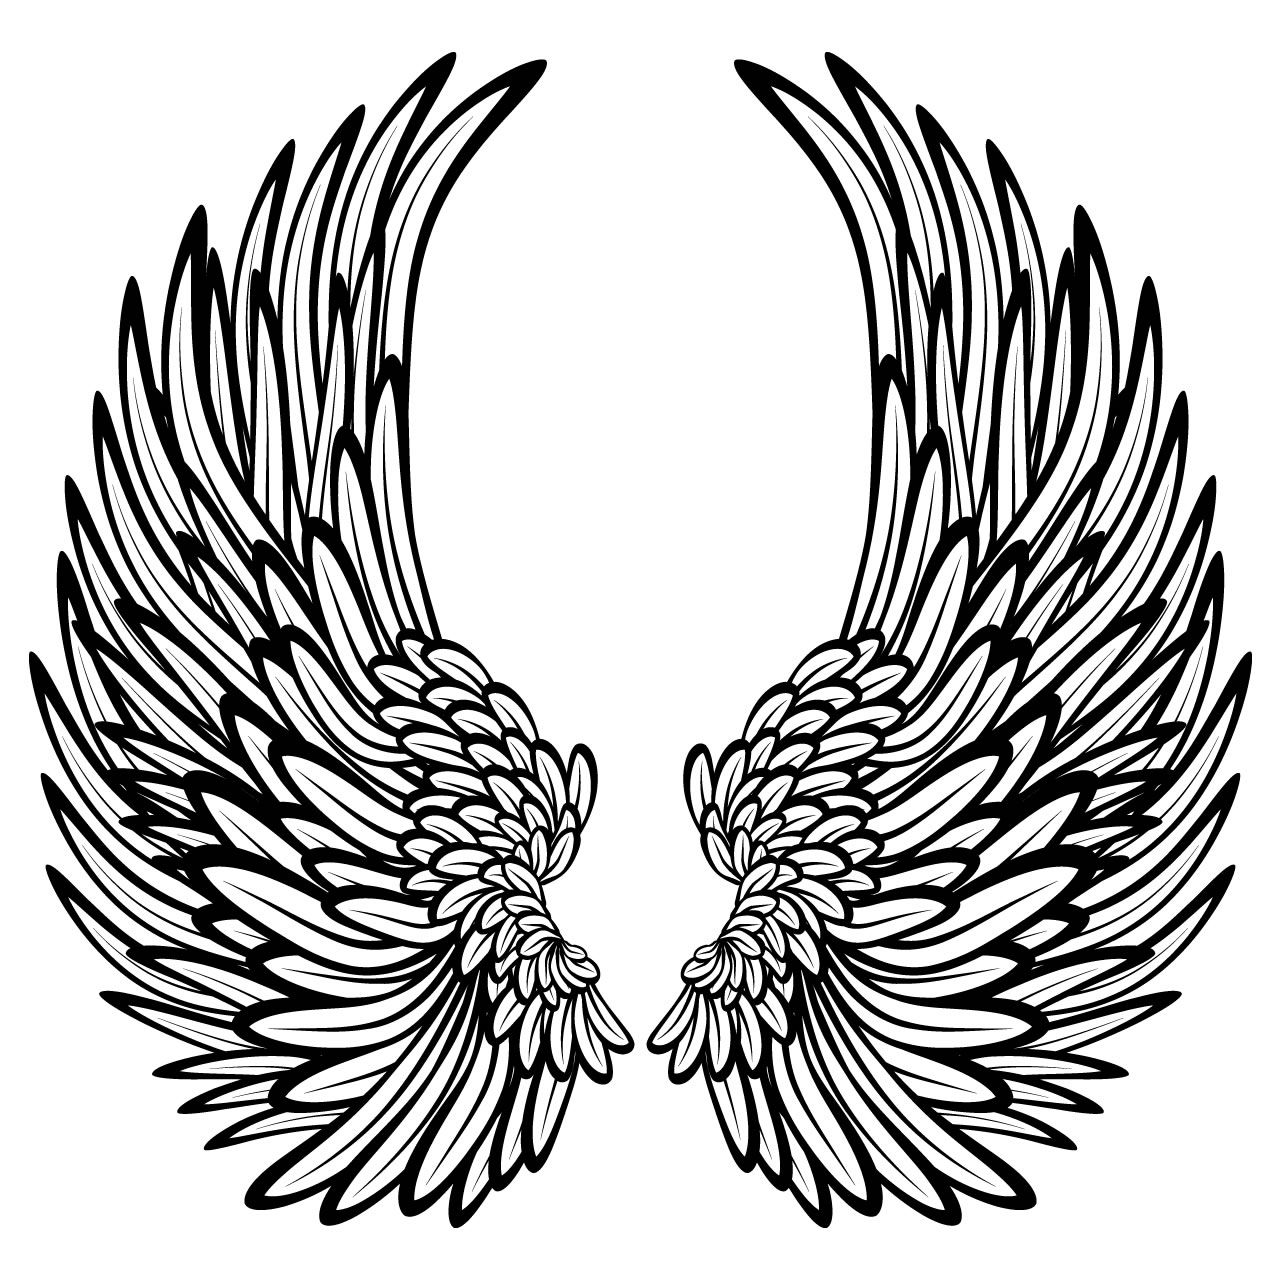 coloring cross with wing cool cross drawings with wings google search wings cross wing coloring with